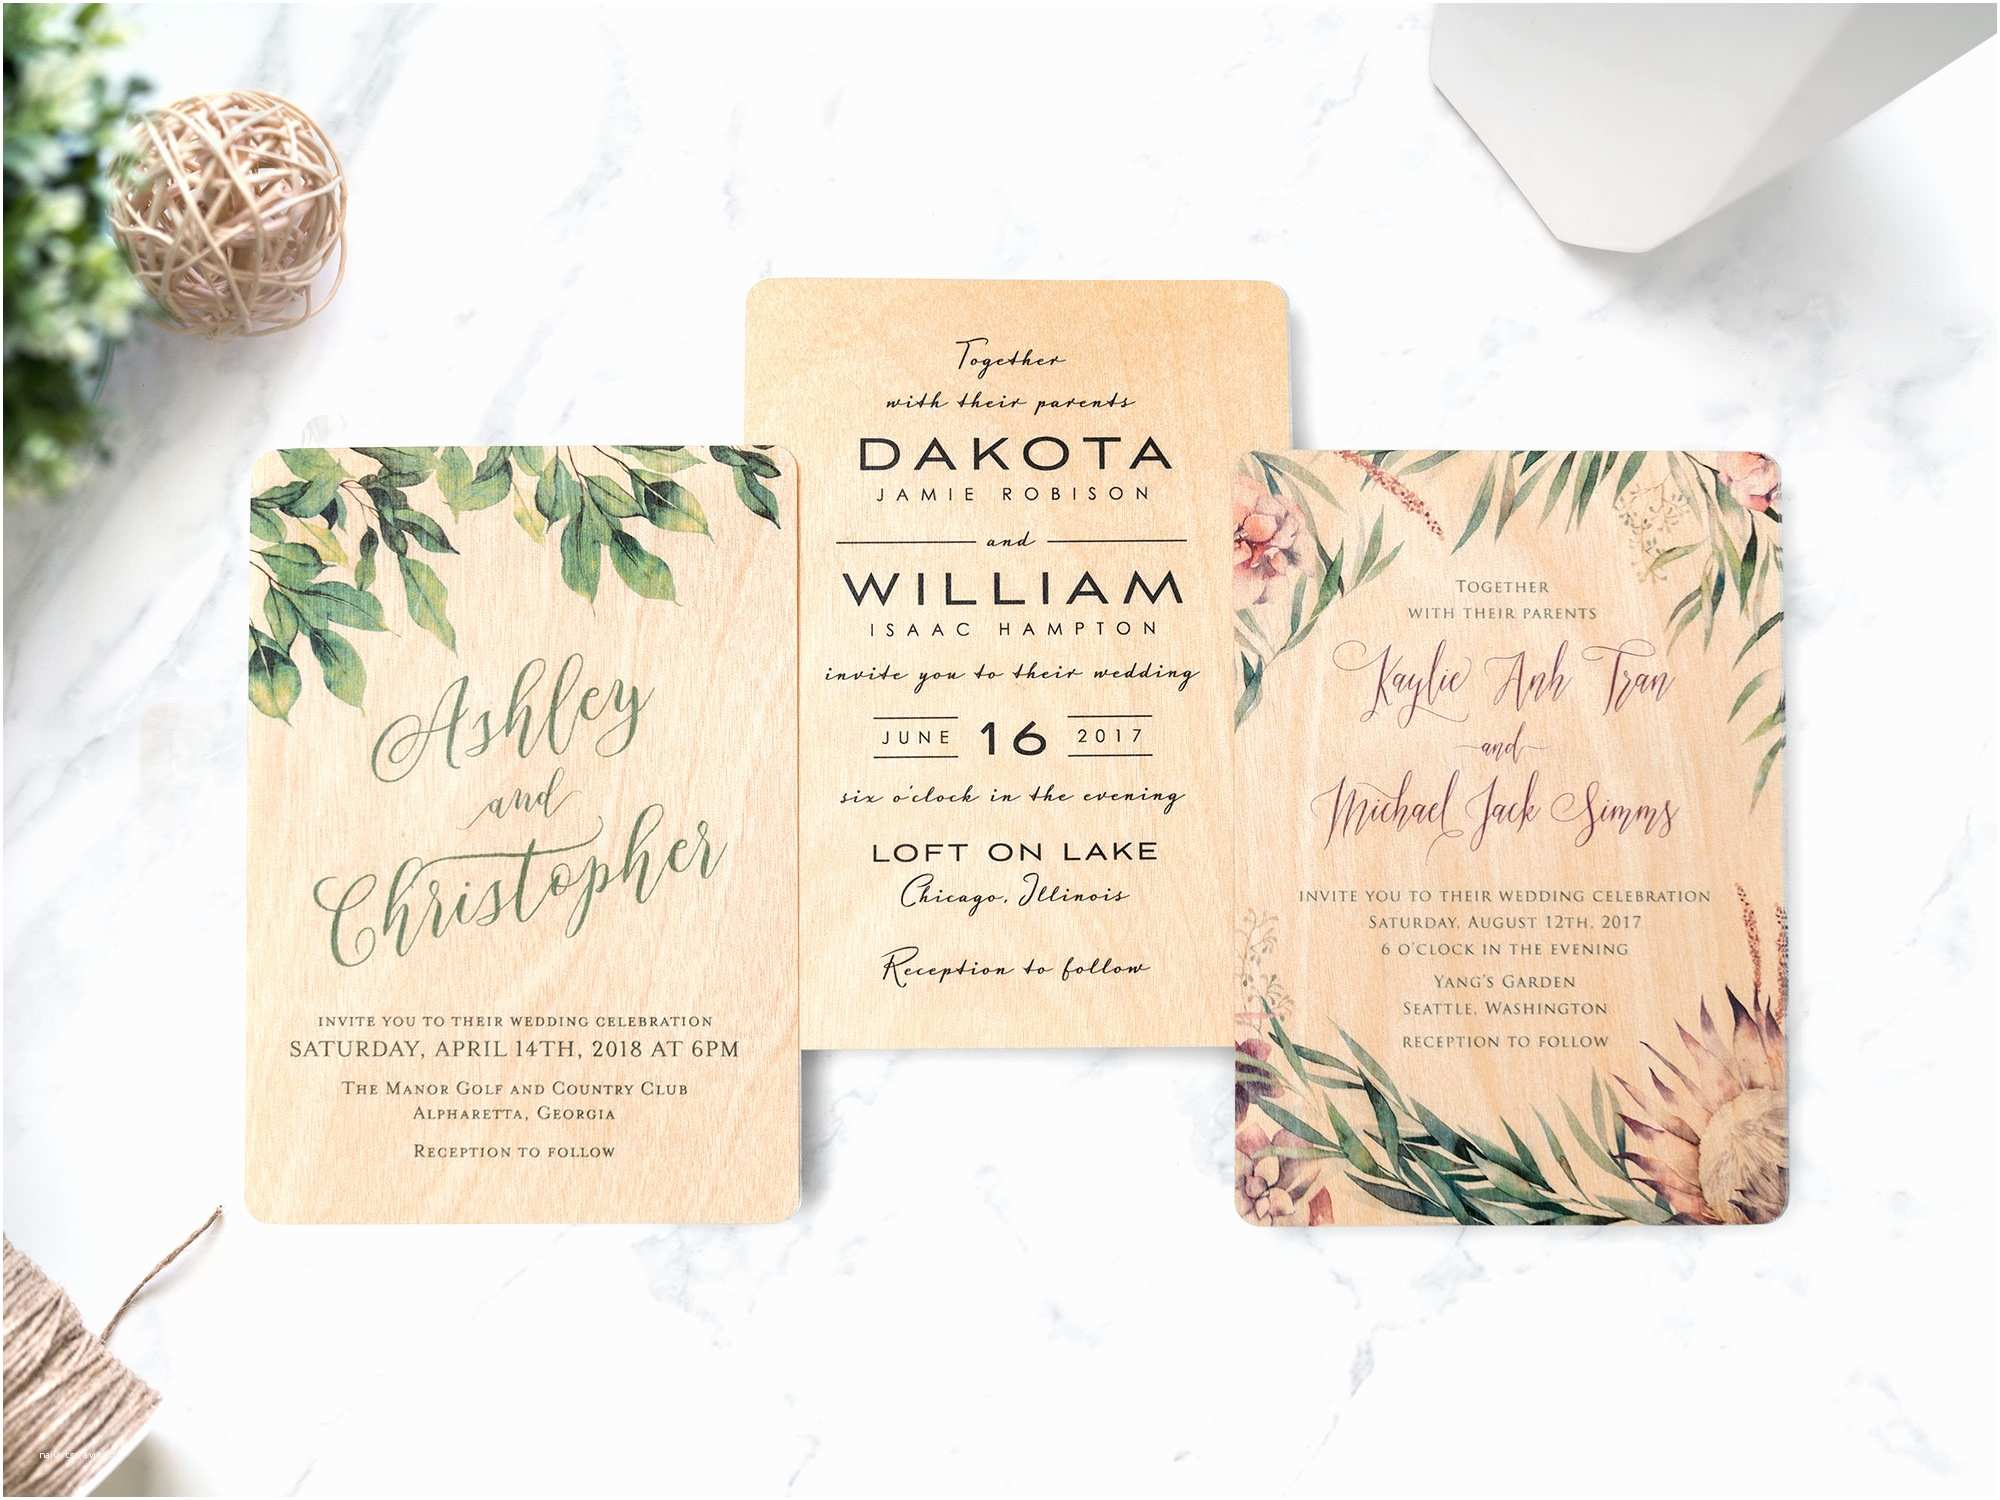 Woodsy Wedding Invitations Wood Wedding Invitations now Available at Woodsnap